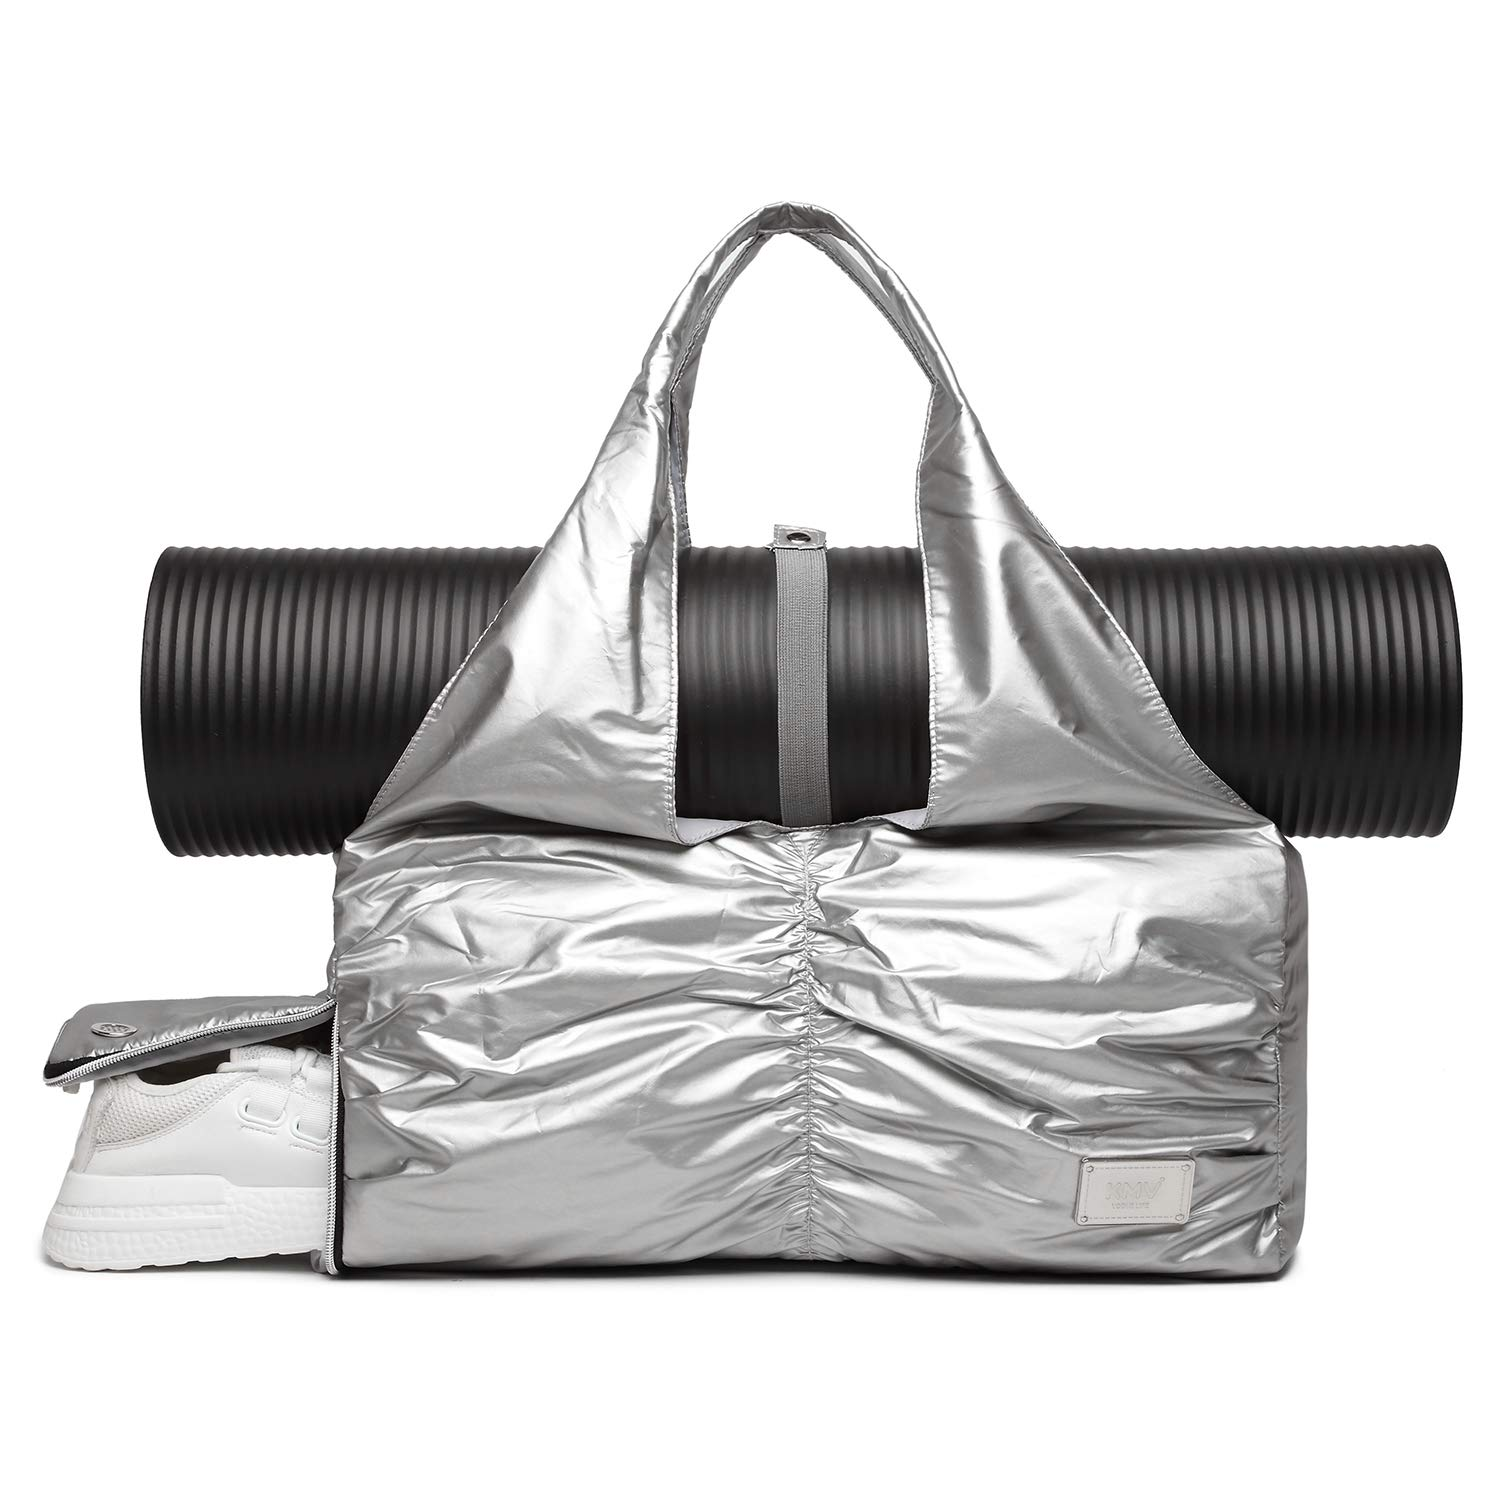 Travel Yoga Gym Bag for Women, Carrying Workout Gear, Makeup, and Accessories, Shoe Compartment and Wet Dry Storage Pockets, Sliver